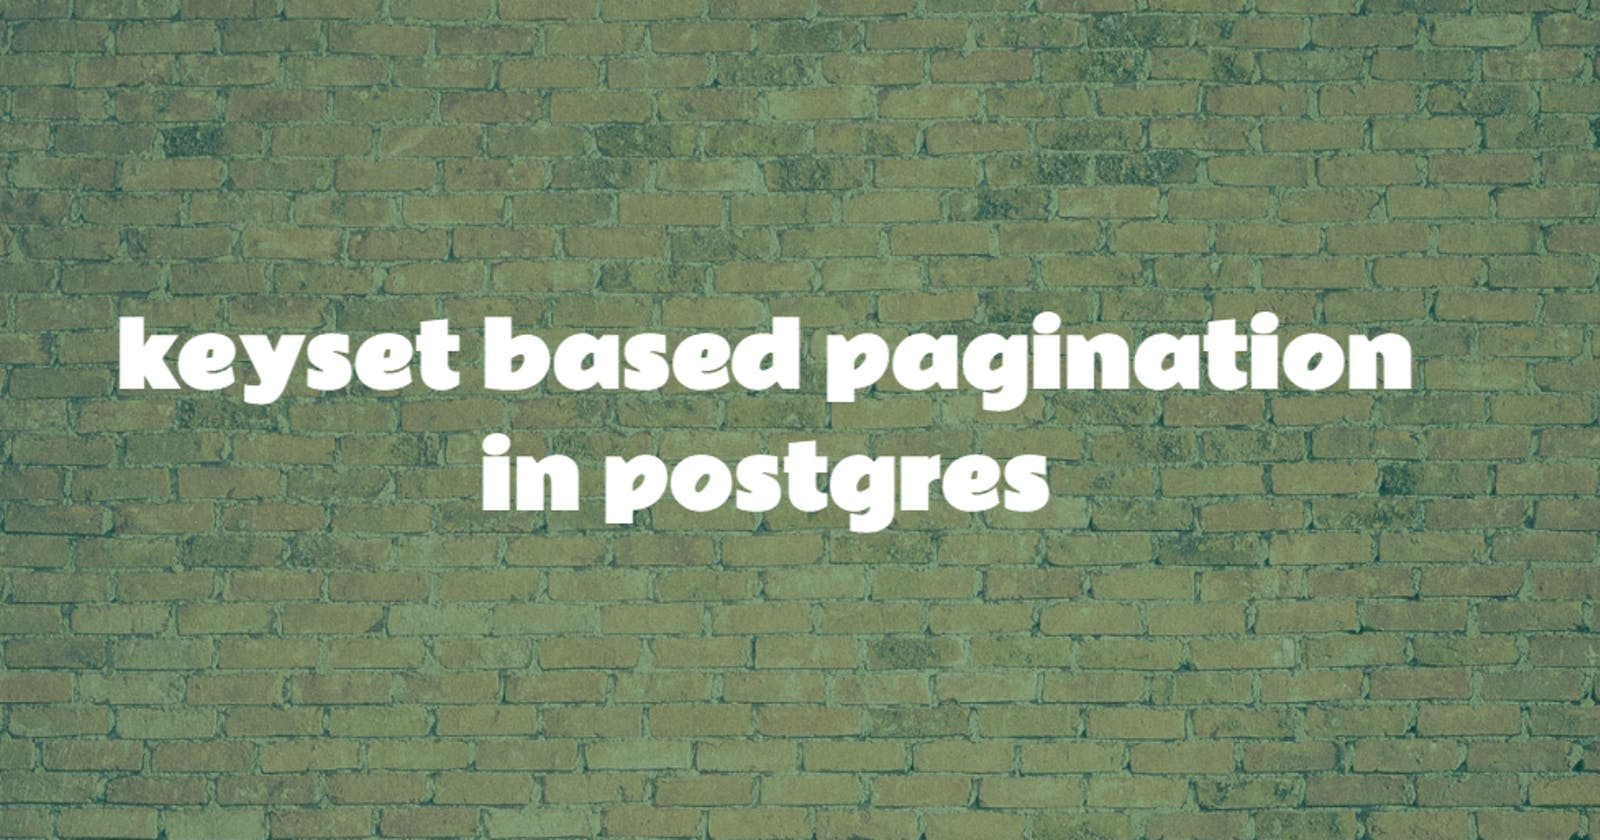 How to implement keyset based pagination in postgres?